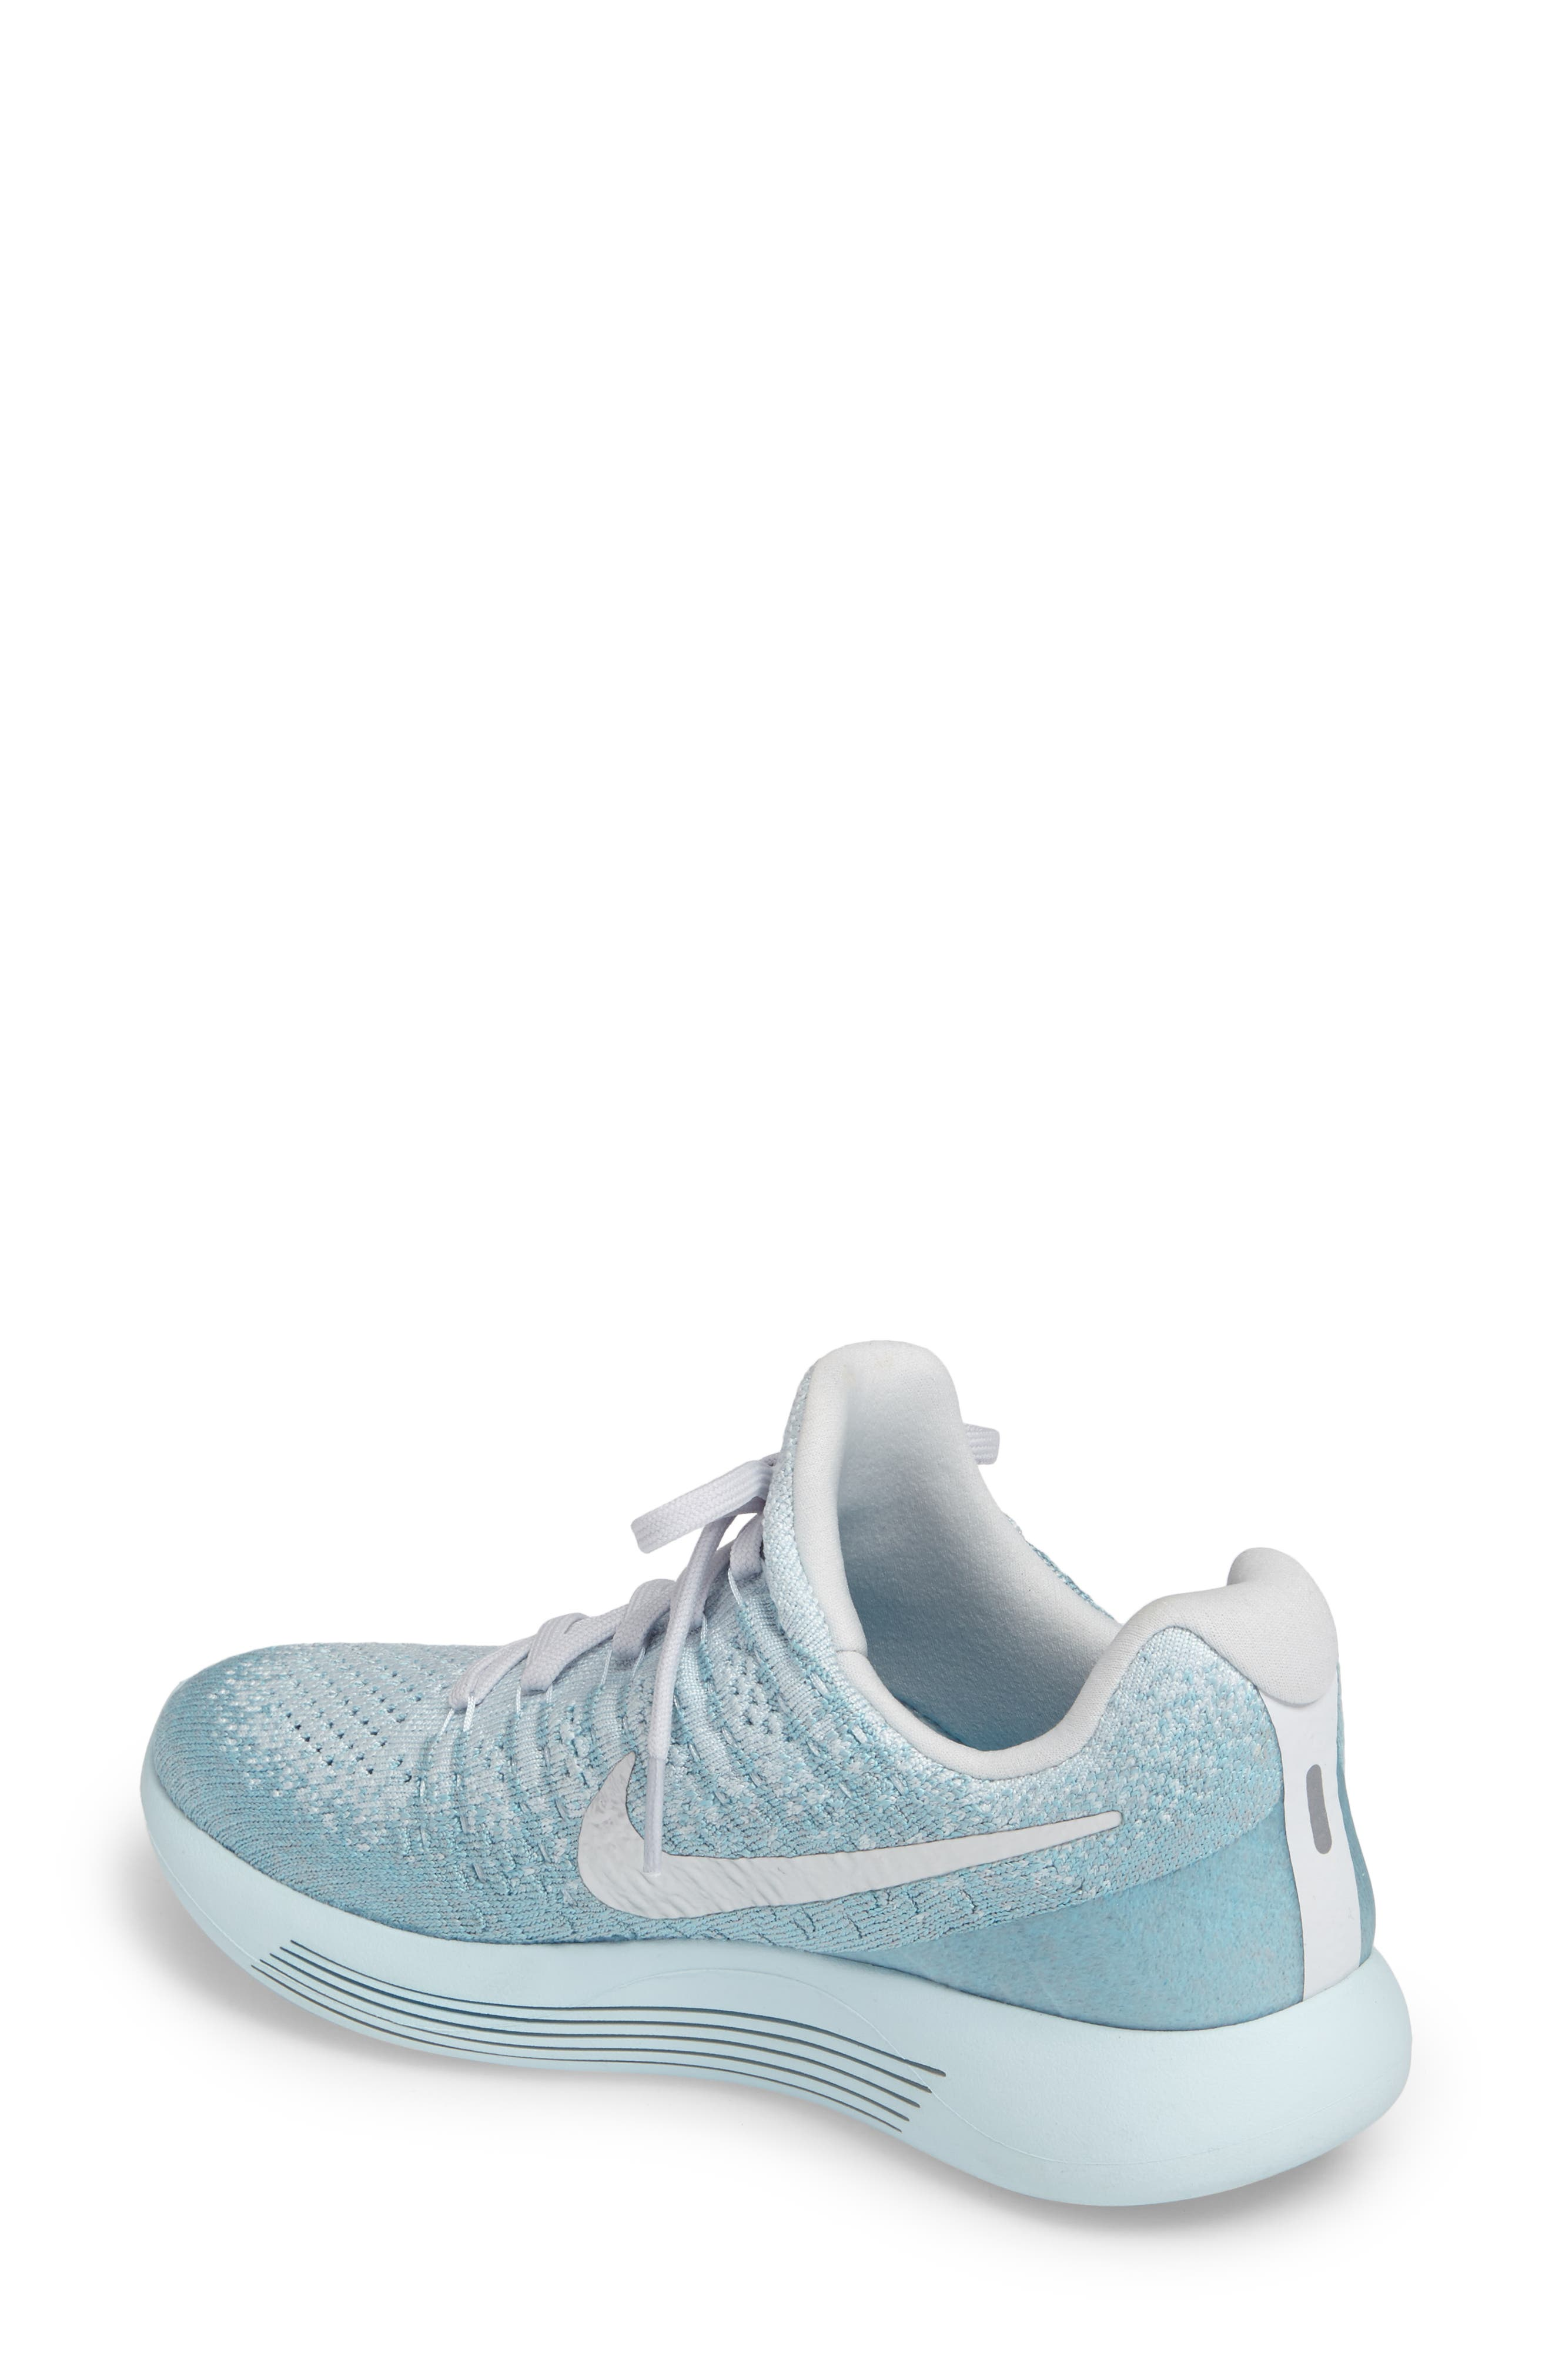 ,                             LunarEpic Low Flyknit 2 Running Shoe,                             Alternate thumbnail 50, color,                             047